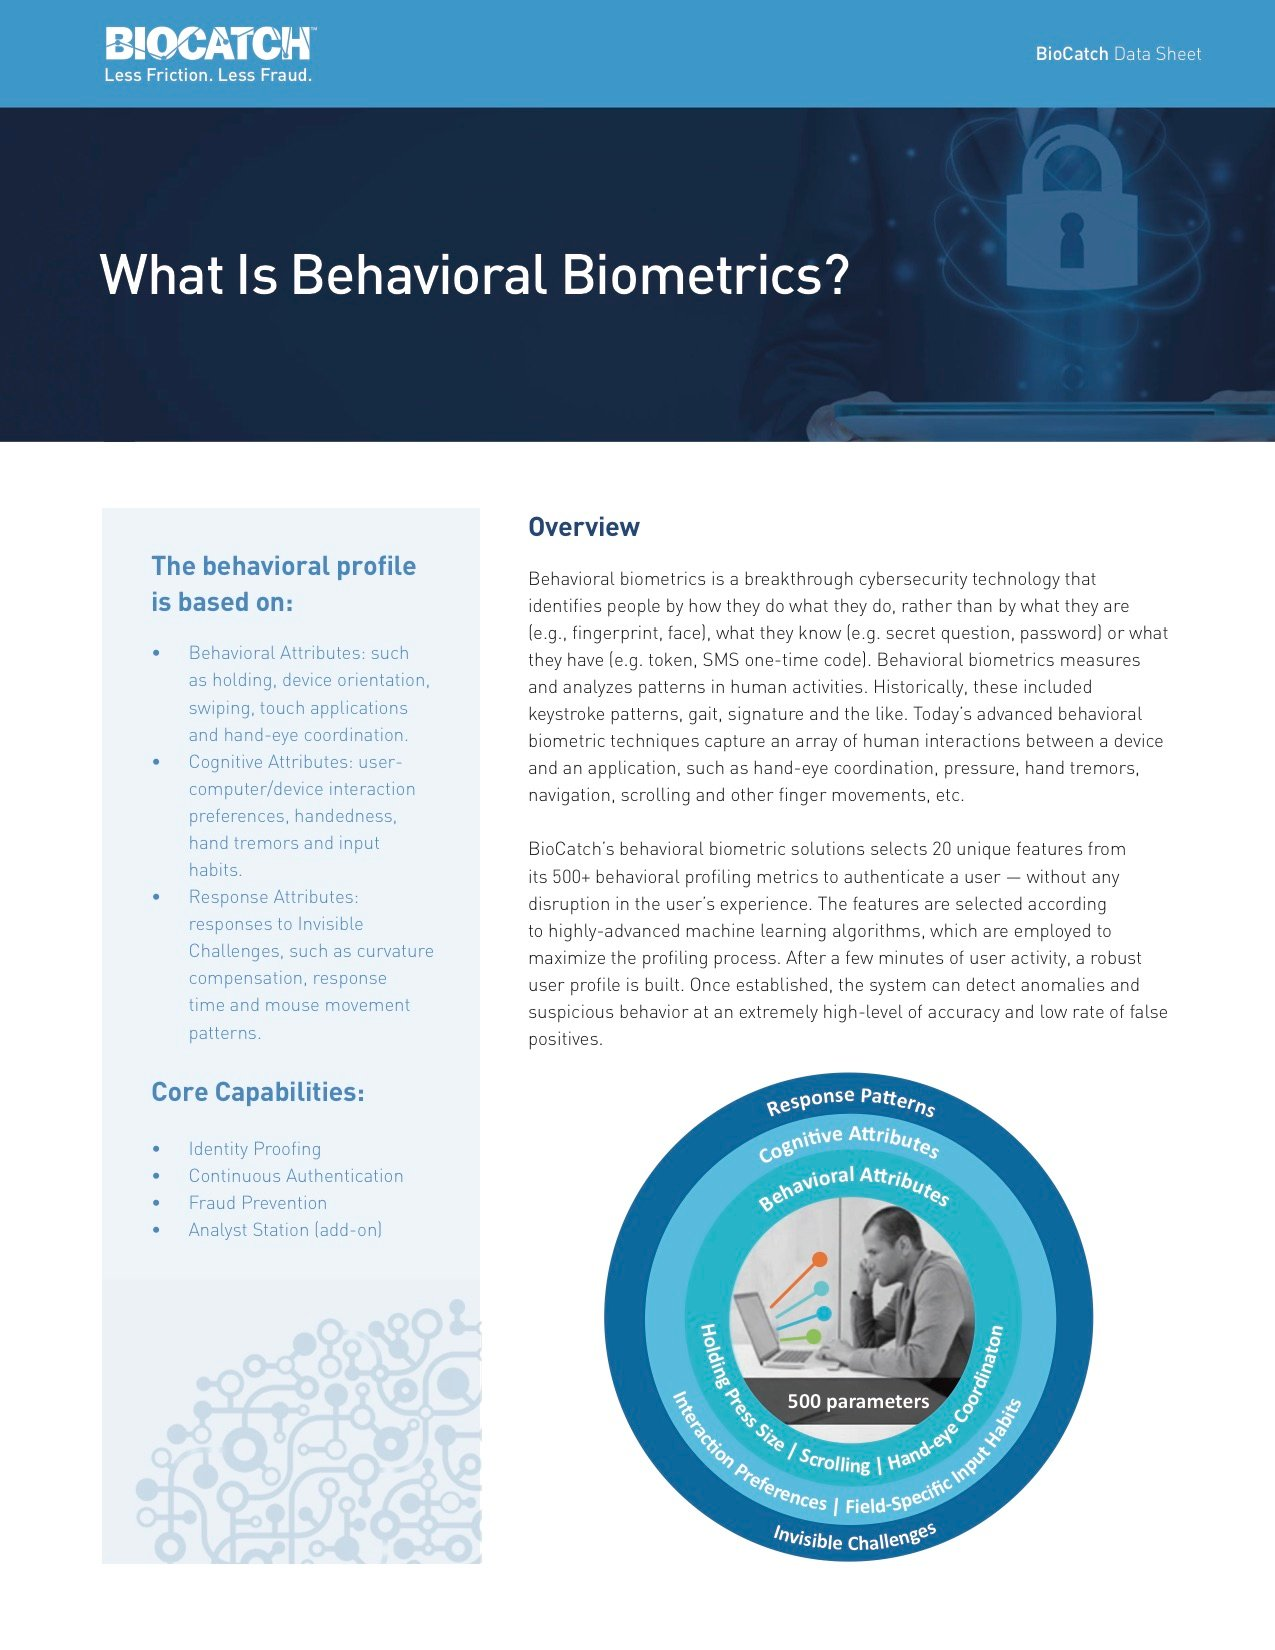 What is Behavioral Biometrics (1)